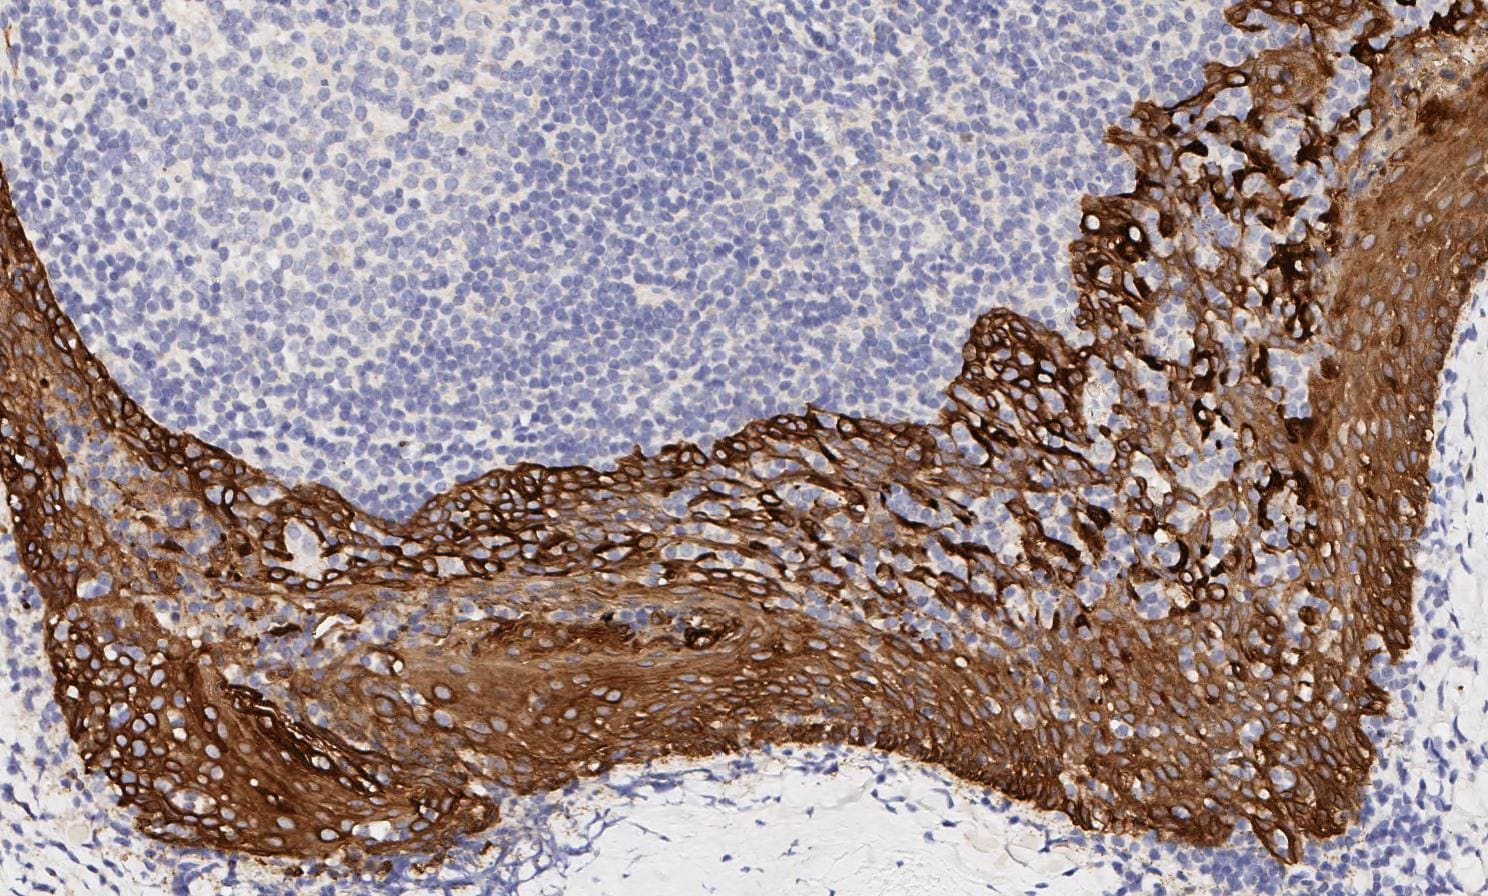 Immunohistochemistry (Formalin/PFA-fixed paraffin-embedded sections) - Anti-pan Cytokeratin antibody [AE1/AE3] - BSA and Azide free (ab80826)